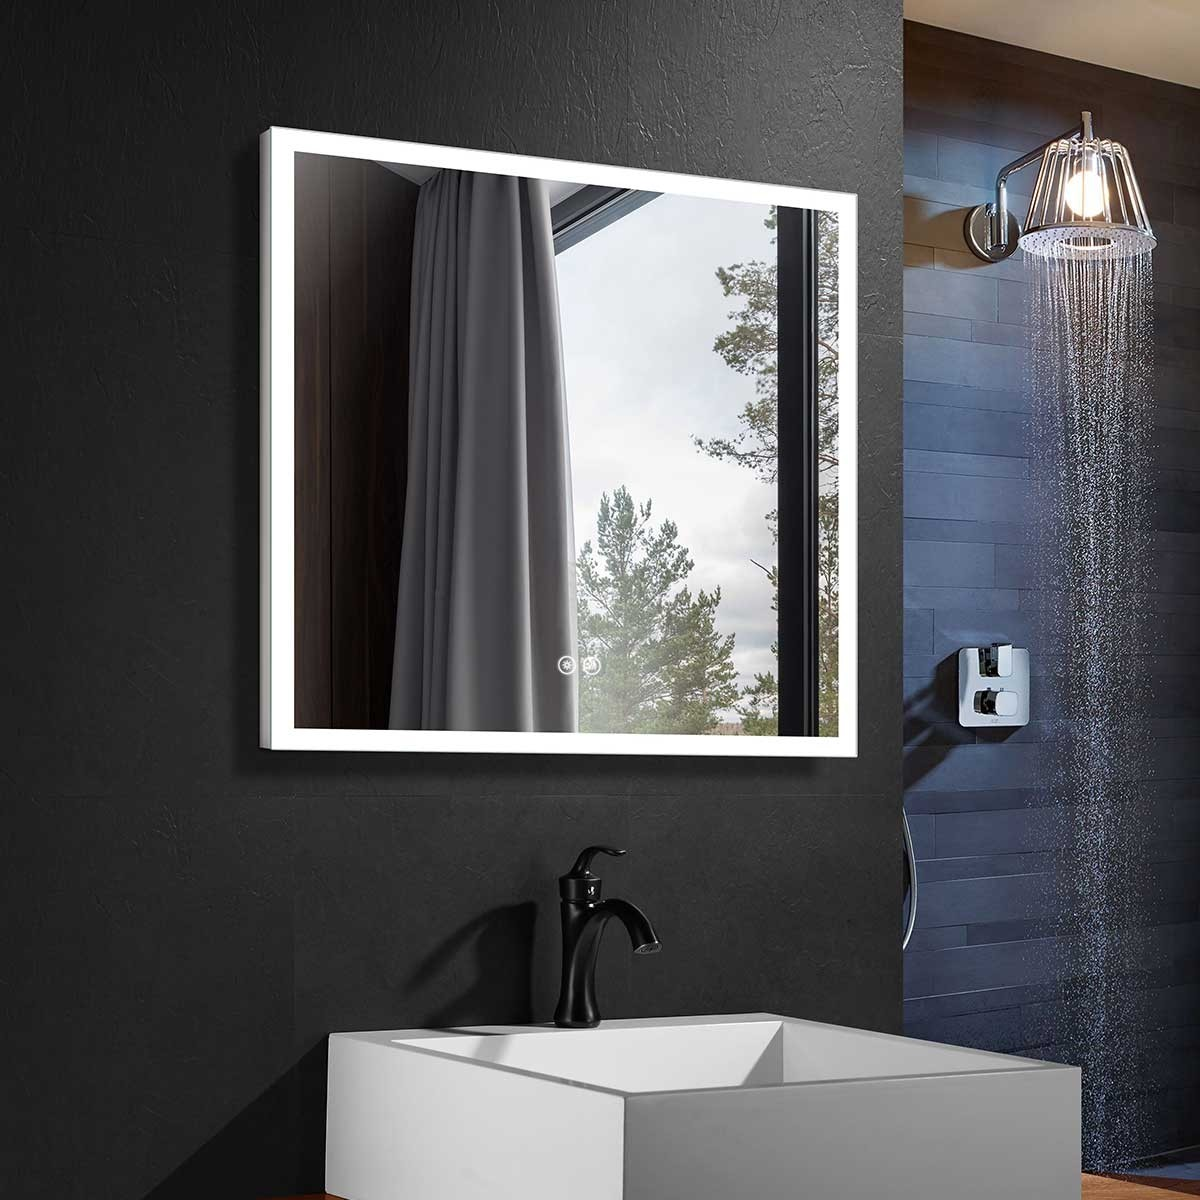 DECORAPORT 36 x 36 Inch LED Bathroom Mirror with Touch Button, Anti Fog, Dimmable (NT12-3636)